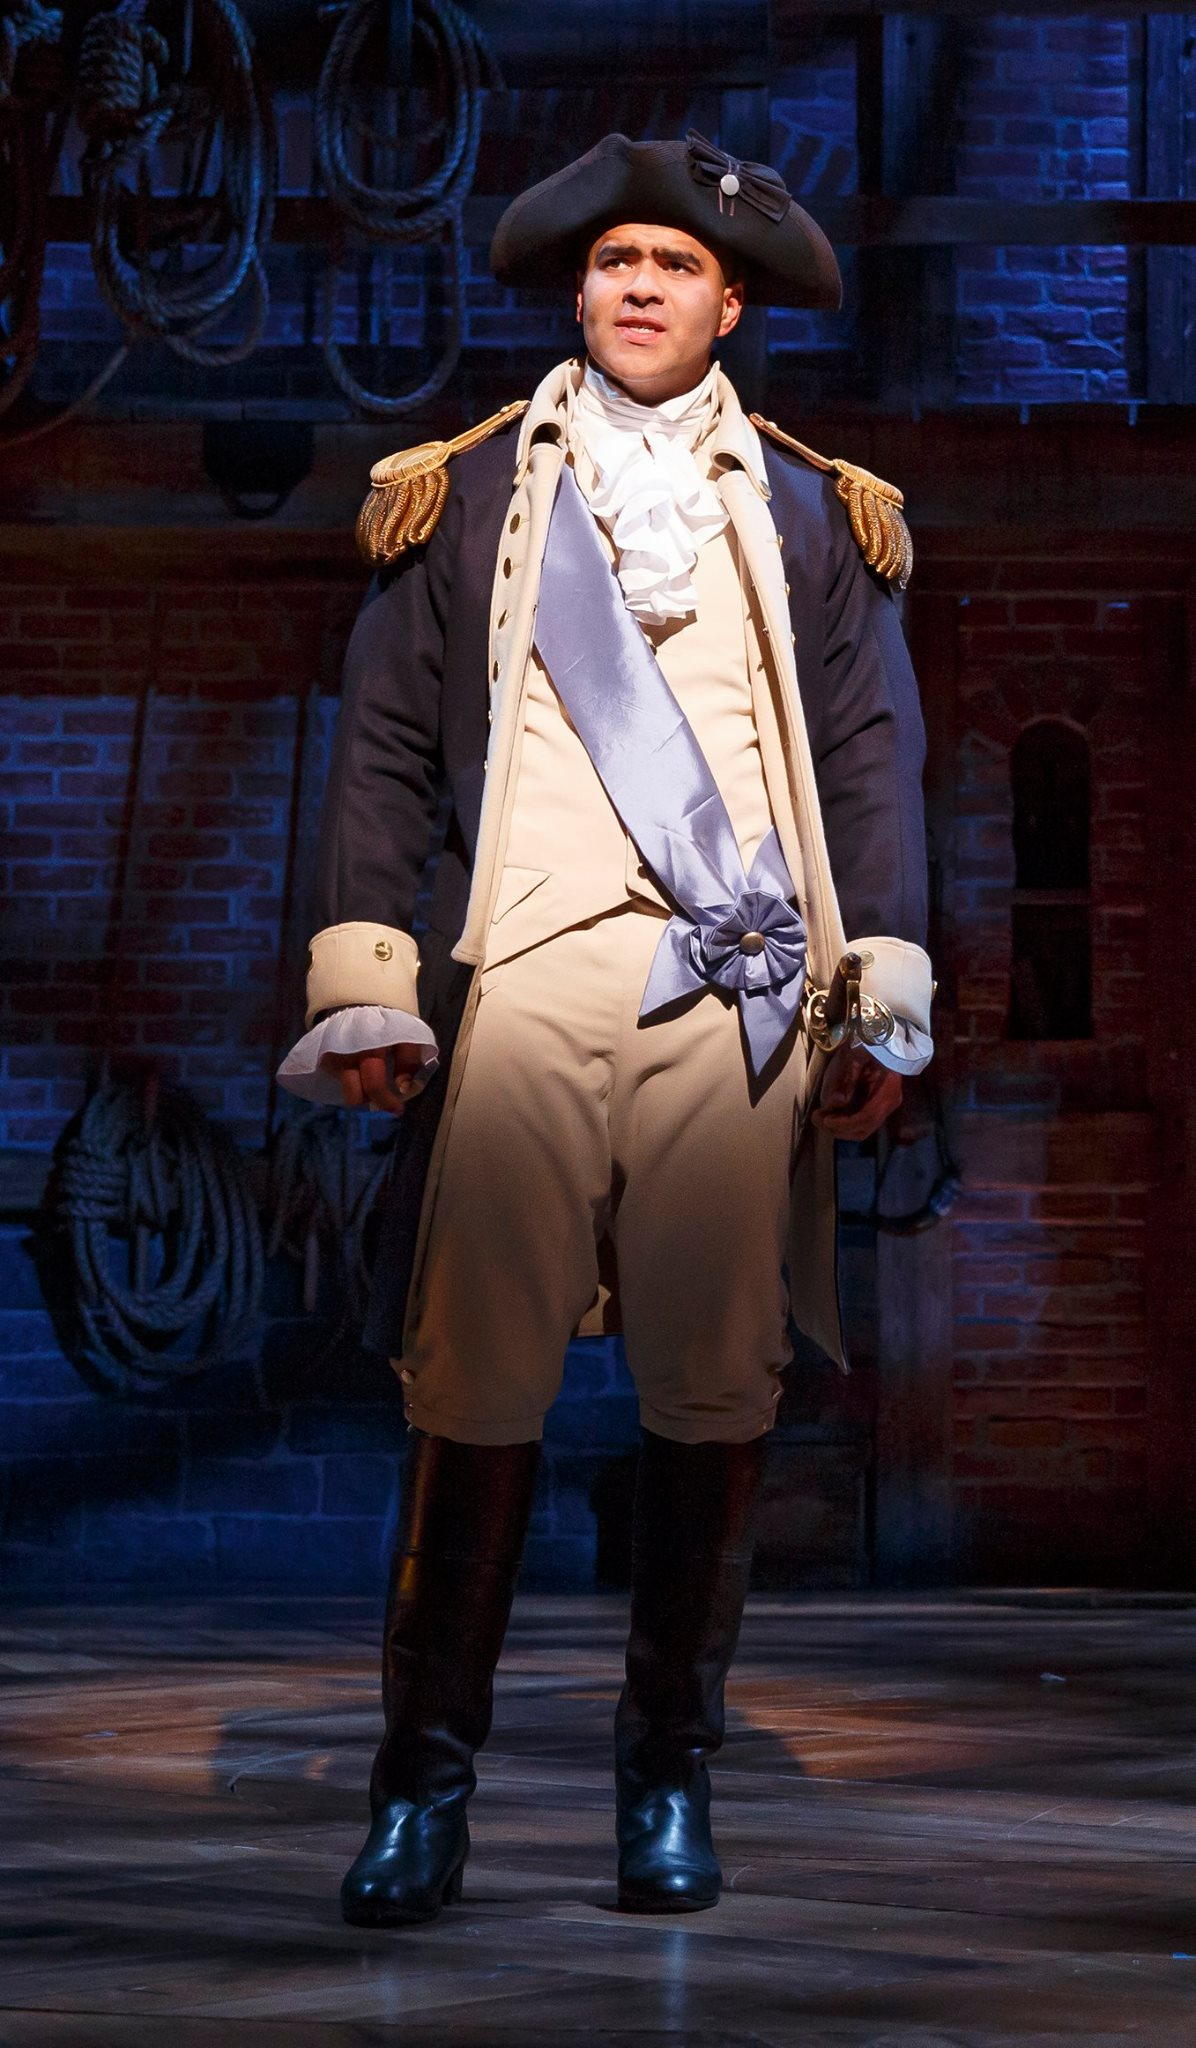 a critique of hamilton a musical by lin manuel miranda This new hip hop-infused musical by 'in the heights' composer-star lin-manuel miranda depicts the sprawling life of founding father alexander hamilton.